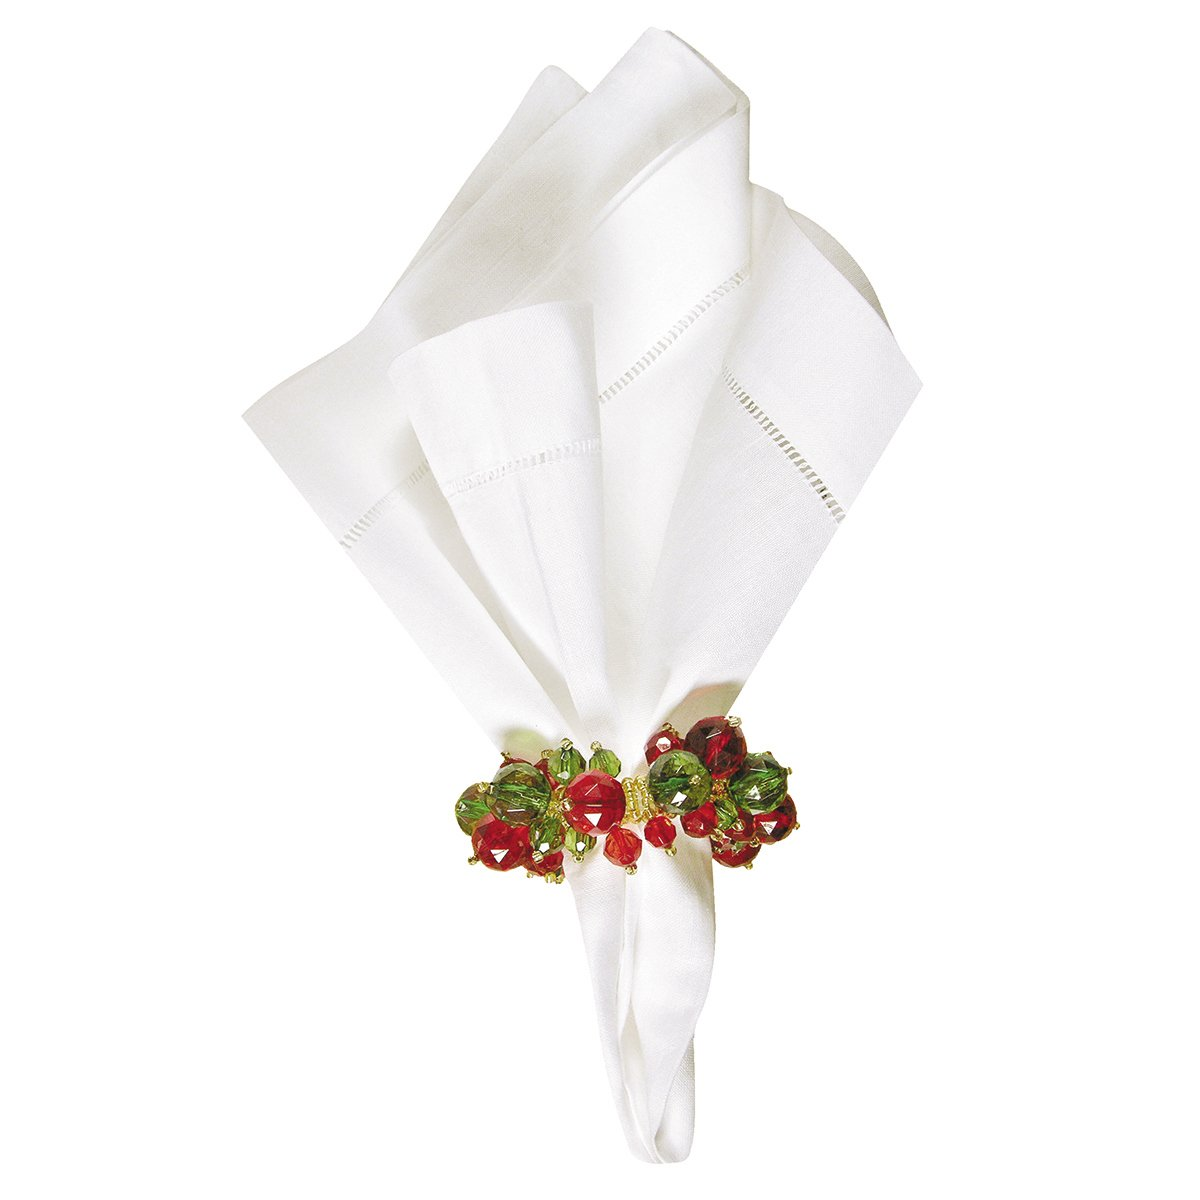 "C&F Home Set of 4 Pcs, 1.5"" Round Beaded Christmas Napkin Ring, Red, Green"